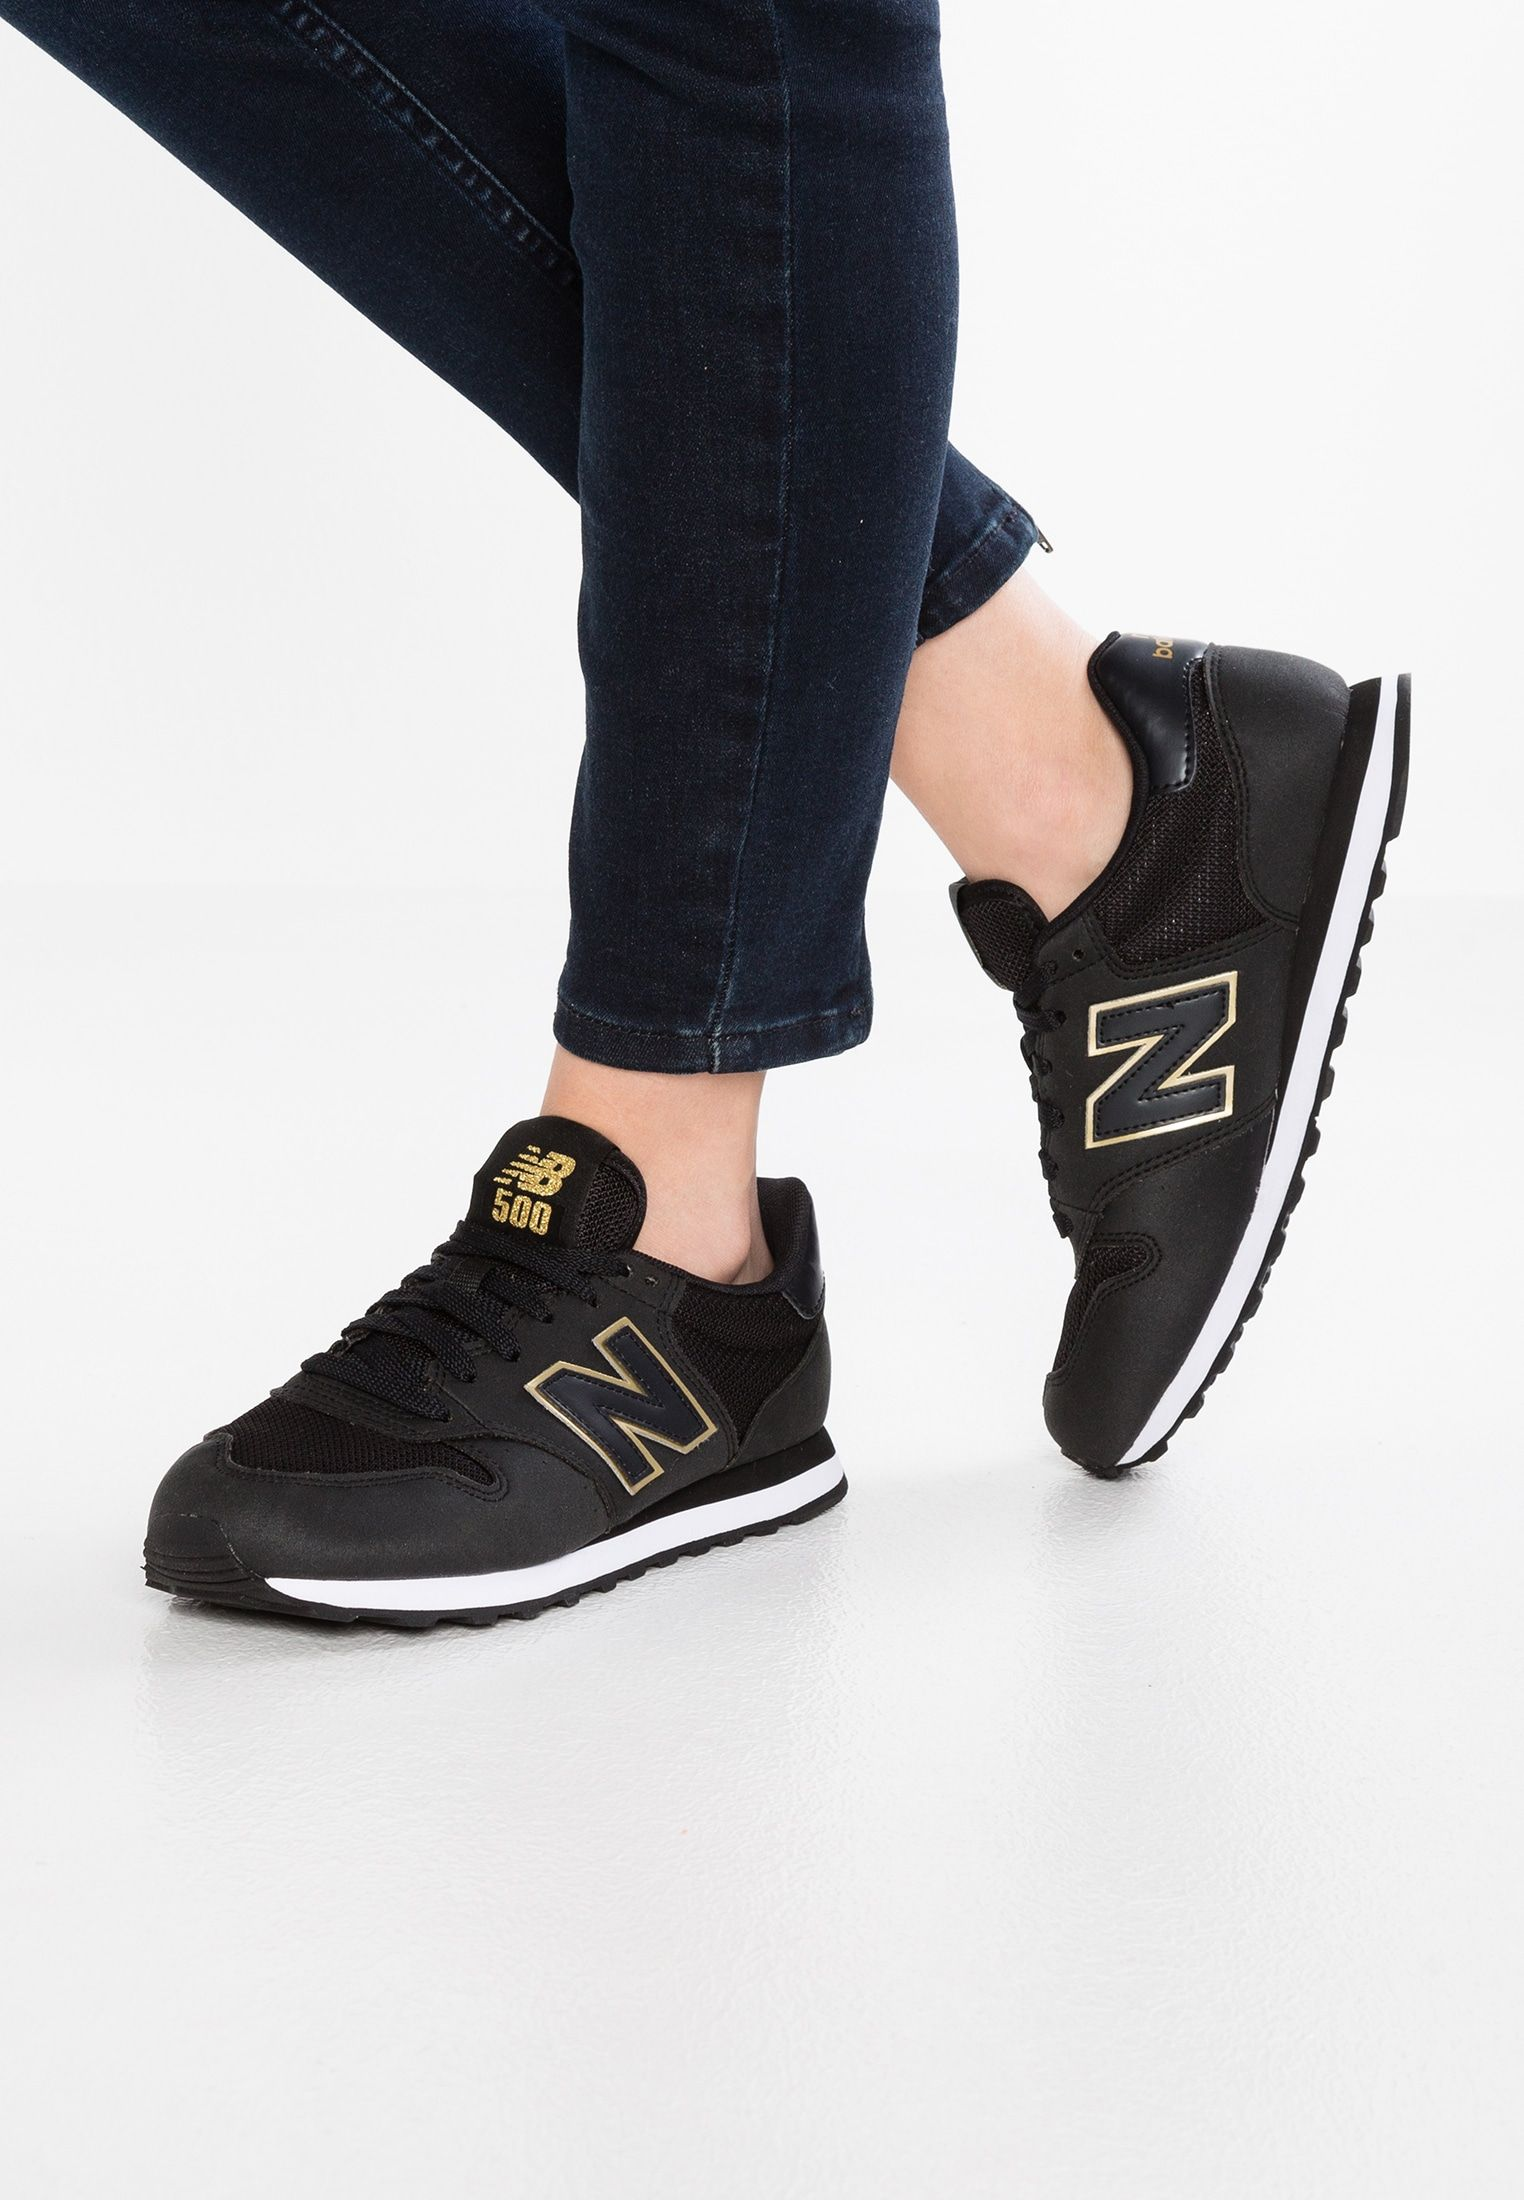 best service 05ade 4f45b New Balance GW500 - Baskets basses - black gold - ZALANDO.FR